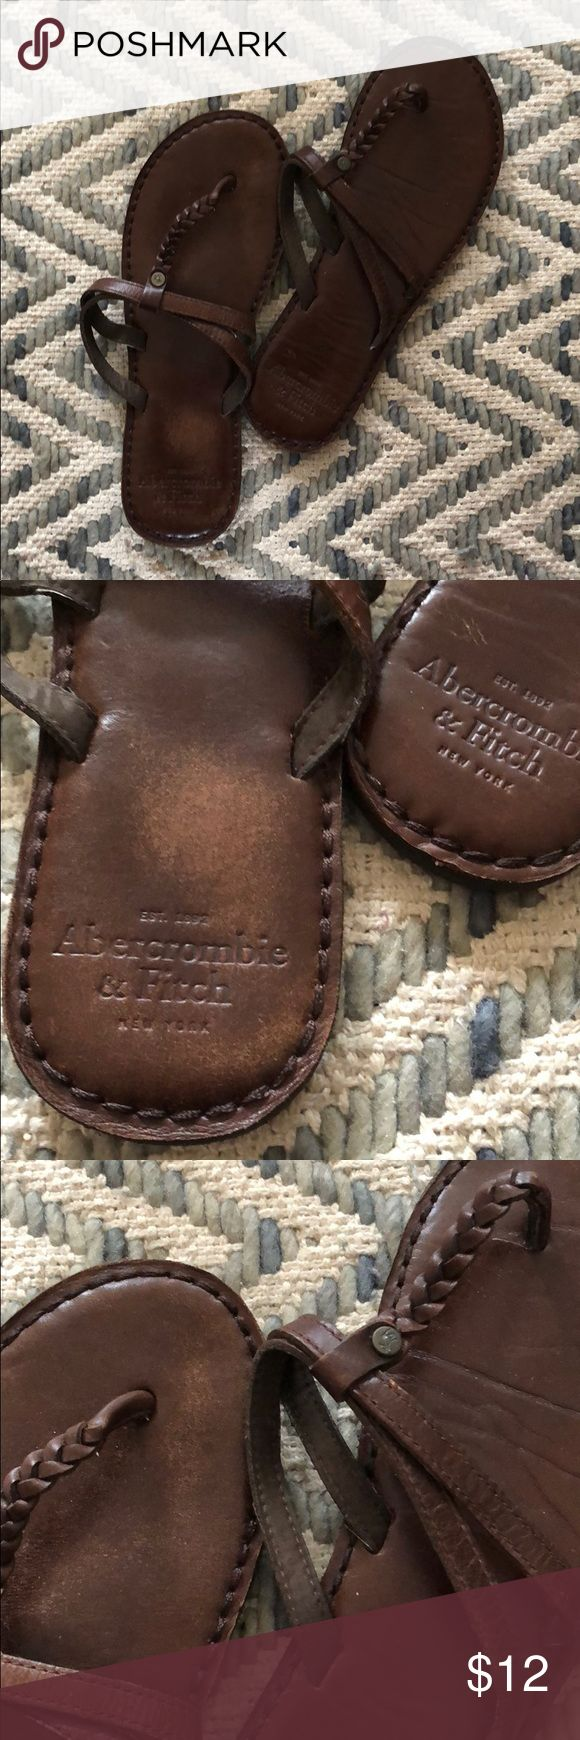 Abercrombie and Fitch leather sandals - brown Great condition. Thong sandal with strap. Beautiful rich brown. Leather is a little discolored on left foot as shown in photos. No one will notice while wearing tho! Super comfy I just never reach for these. Only worn maybe once or twice. I wear 61/2 and these fit me. I can't find the size but I think abercrombie sandals go by s,m,l. And I think these are a small. Abercrombie & Fitch Shoes Sandals